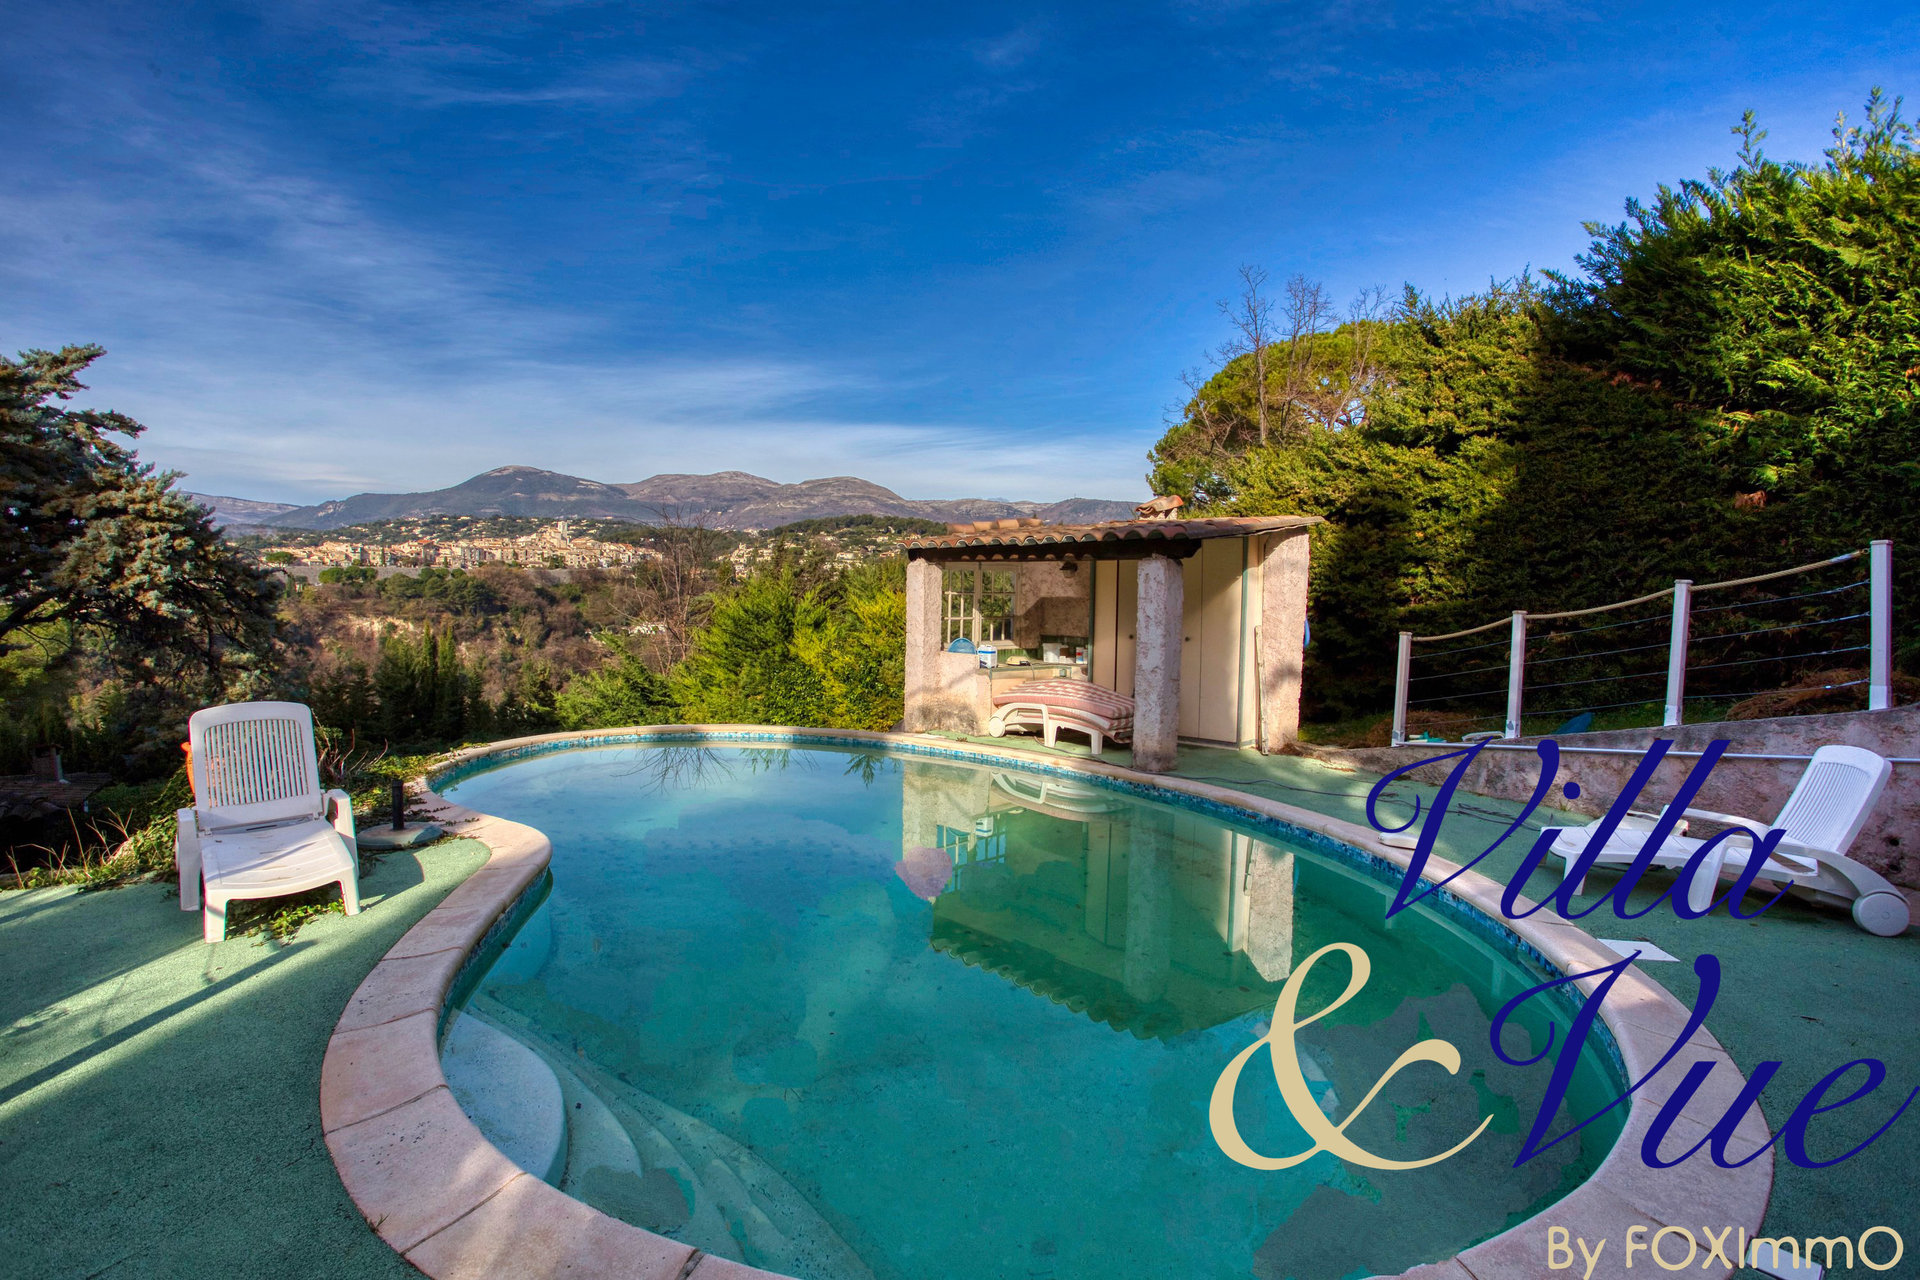 Saint Paul de Vence; Ston e Bastide with swimming pool